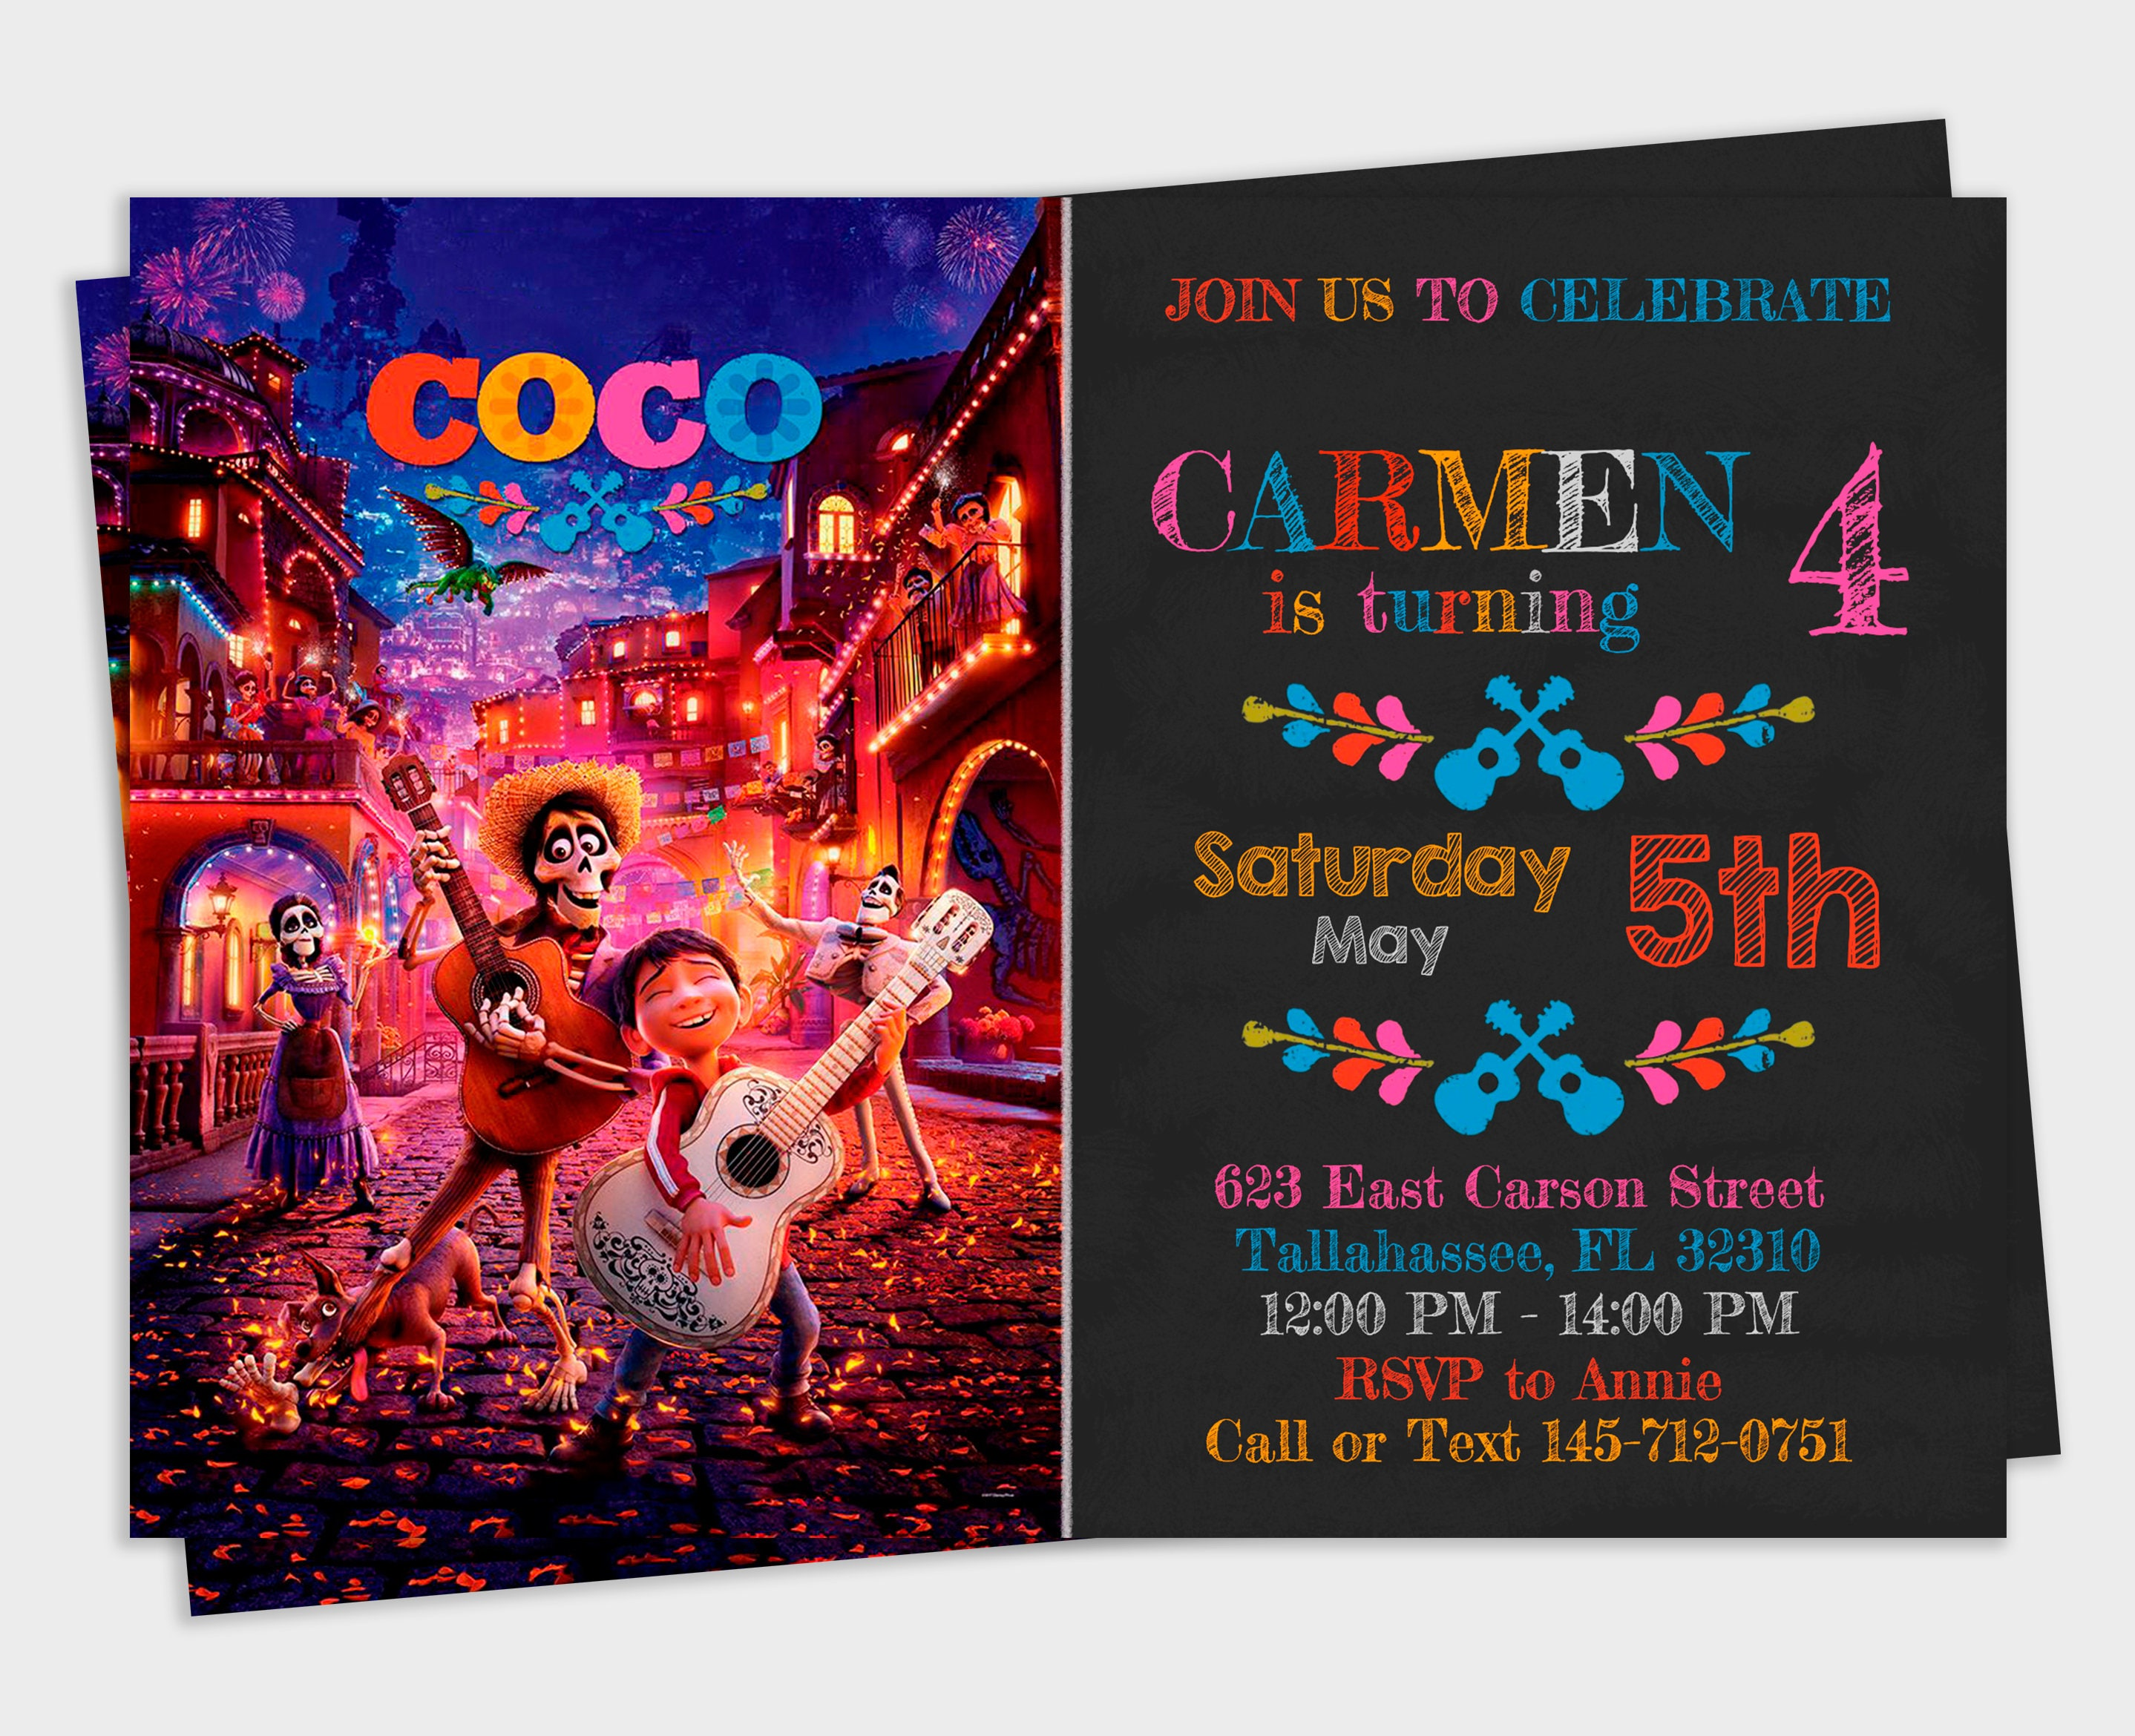 Coco Invitation Coco Party Birthday Invitation Coco